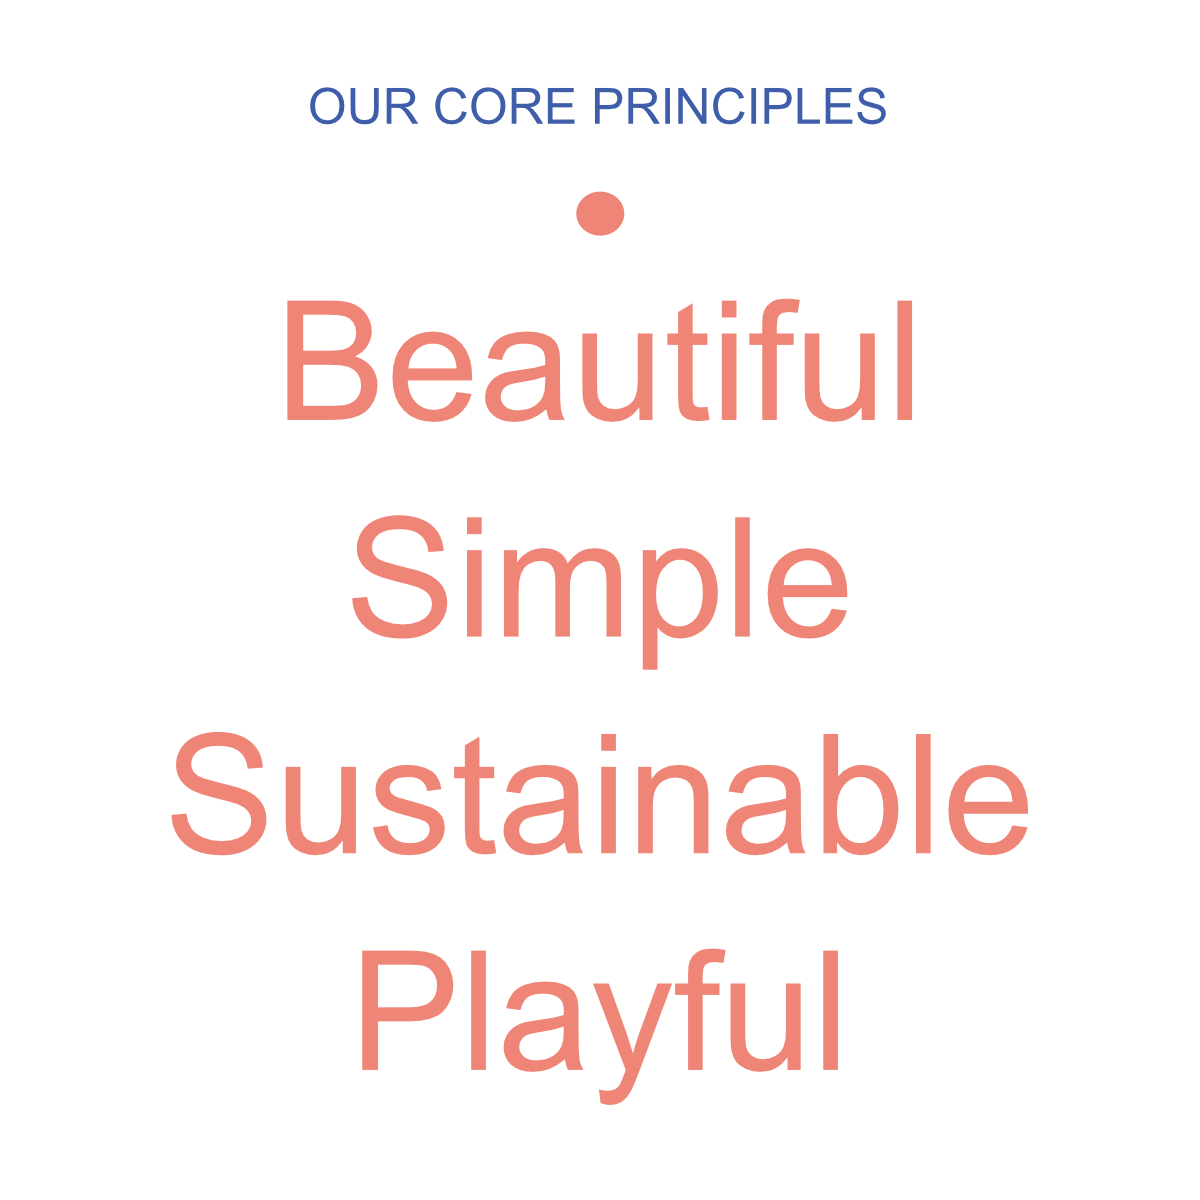 Our Core Principles - Beautiful, Simple, Sustainable, Playful